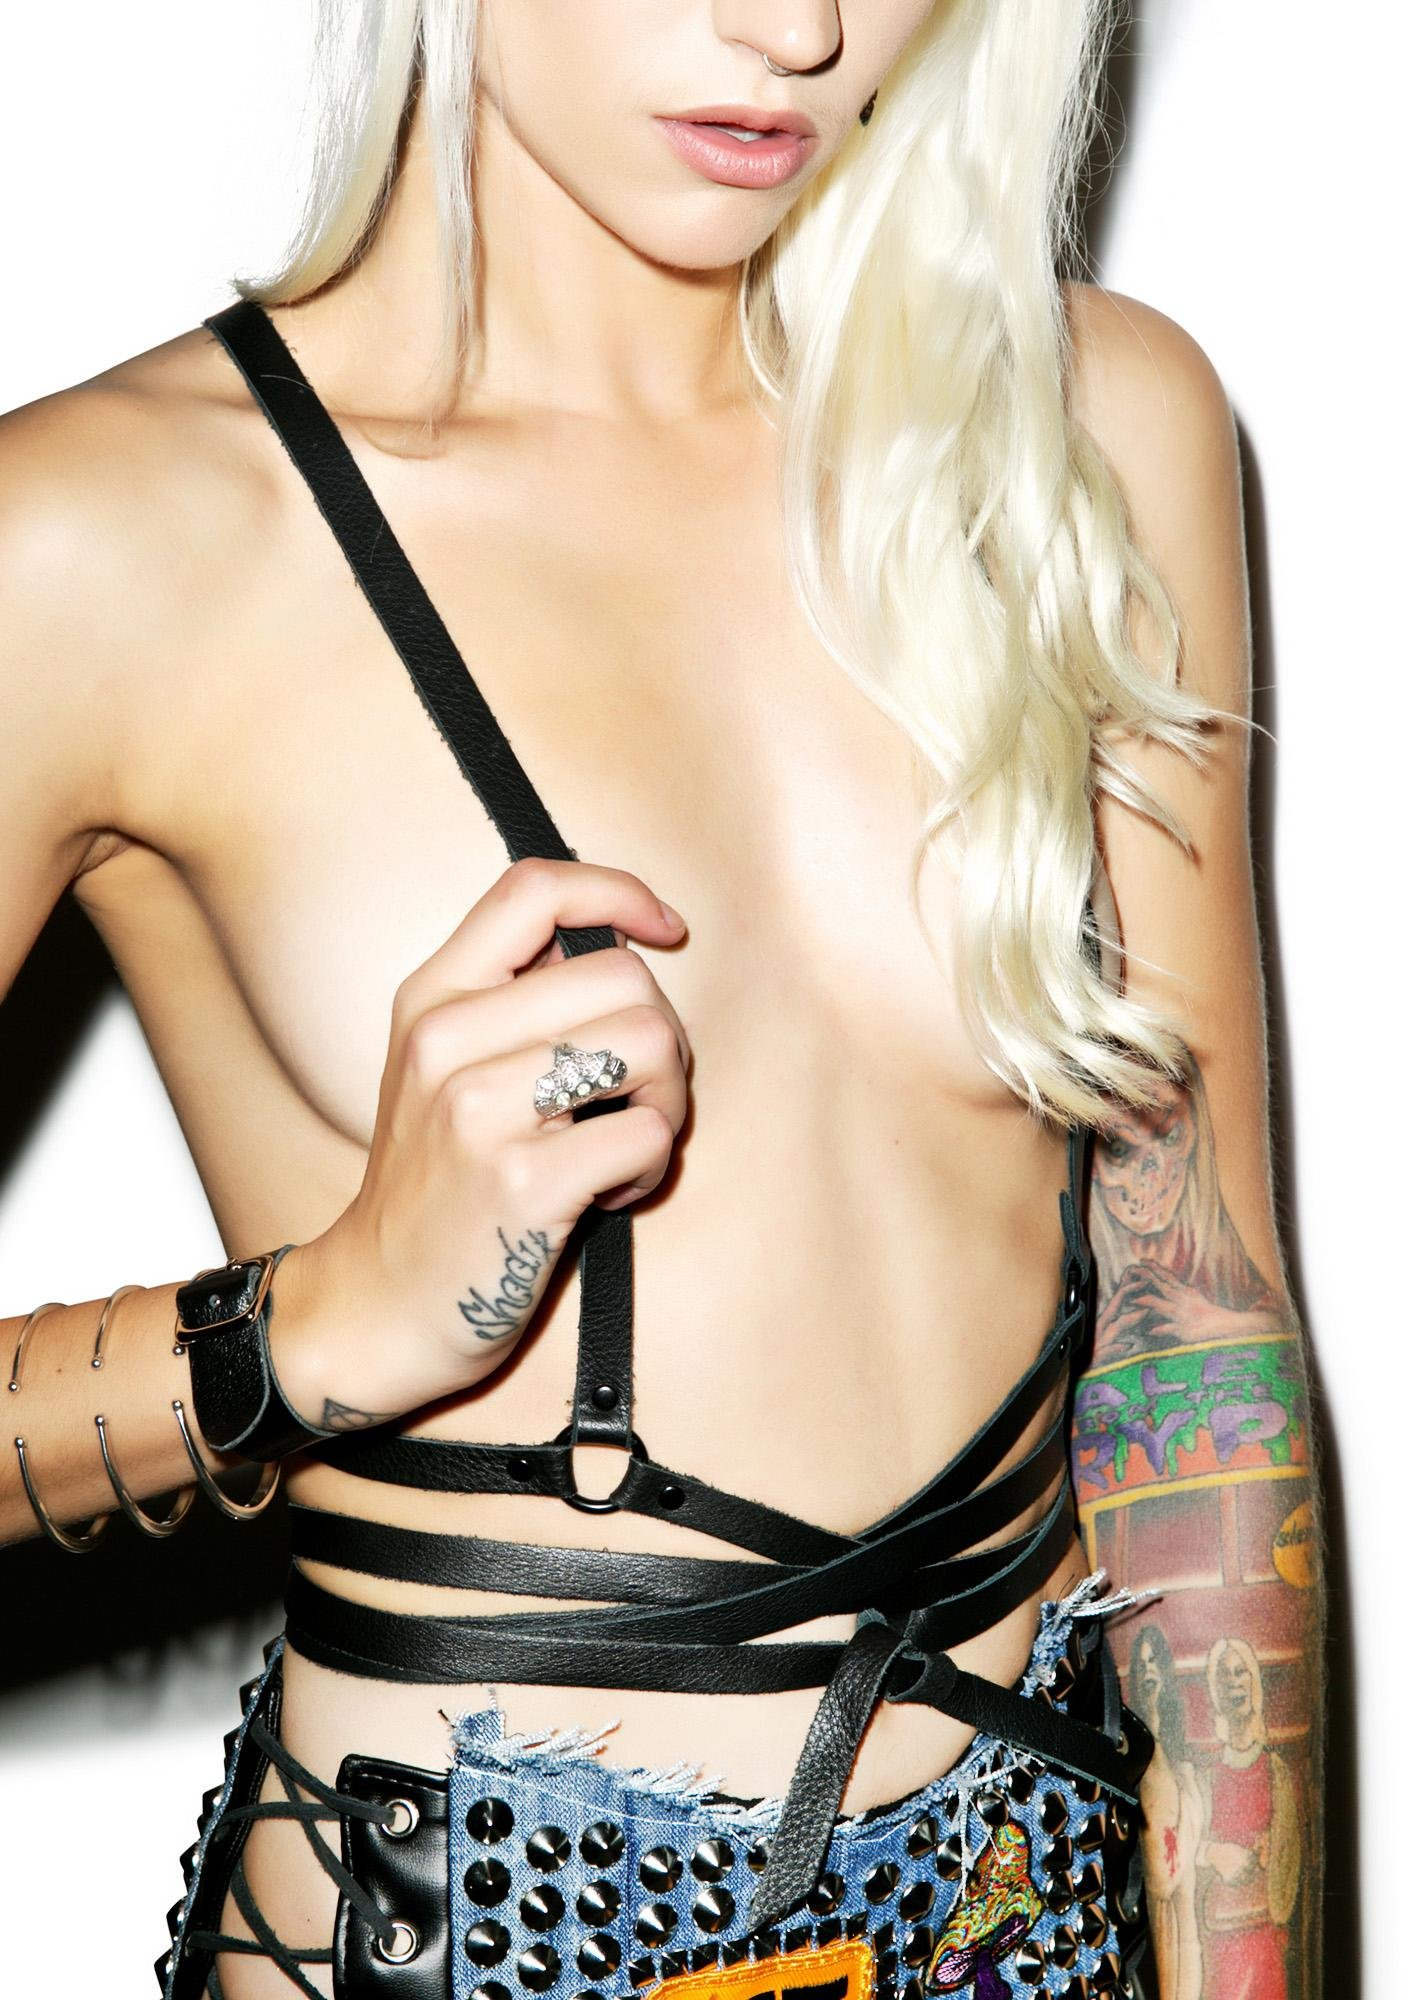 JAKIMAC Jackimac Wrap Around Leather Harness